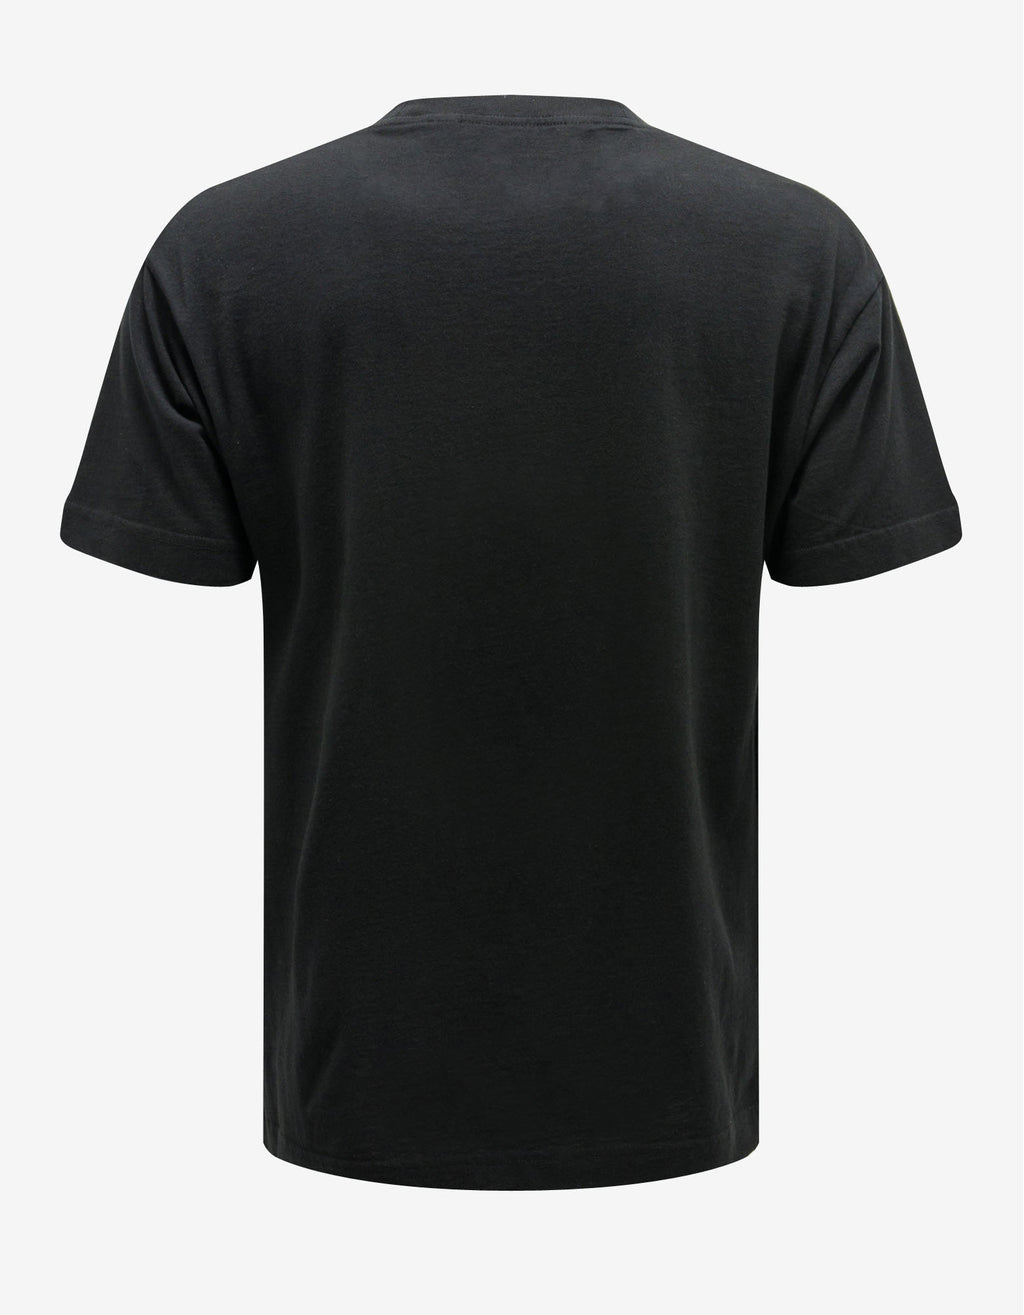 Black West Hollywood Sprayed Logo T-Shirt